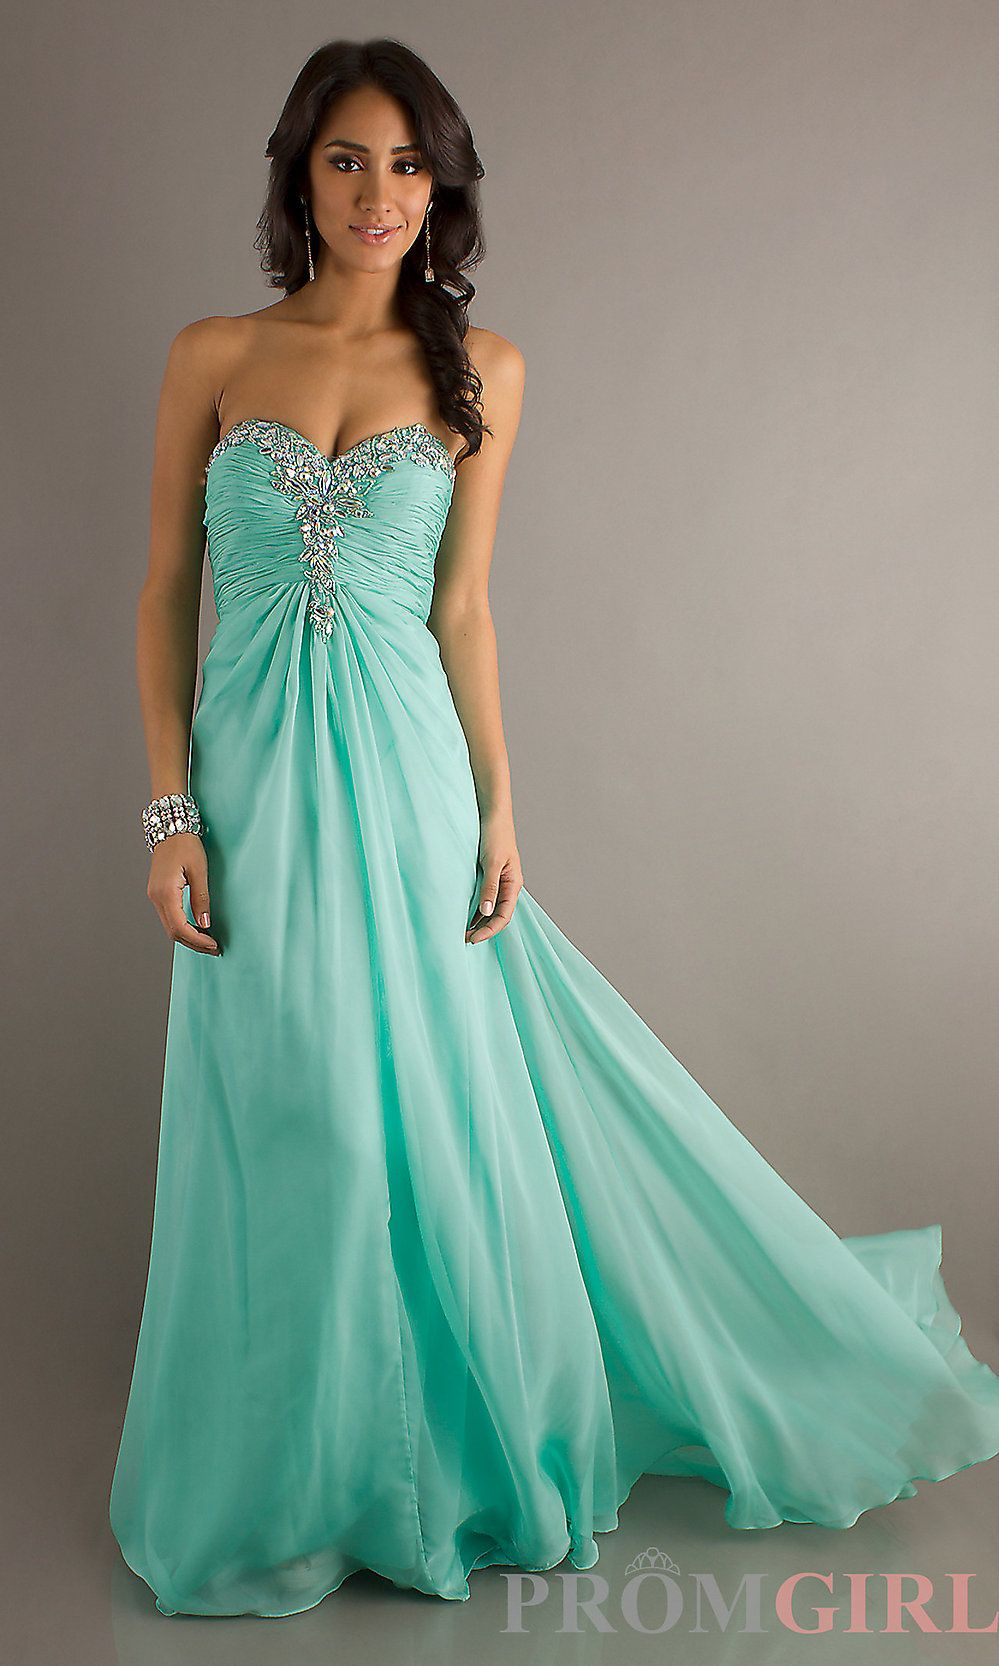 1000  images about dresses on Pinterest  Long prom dresses One ...